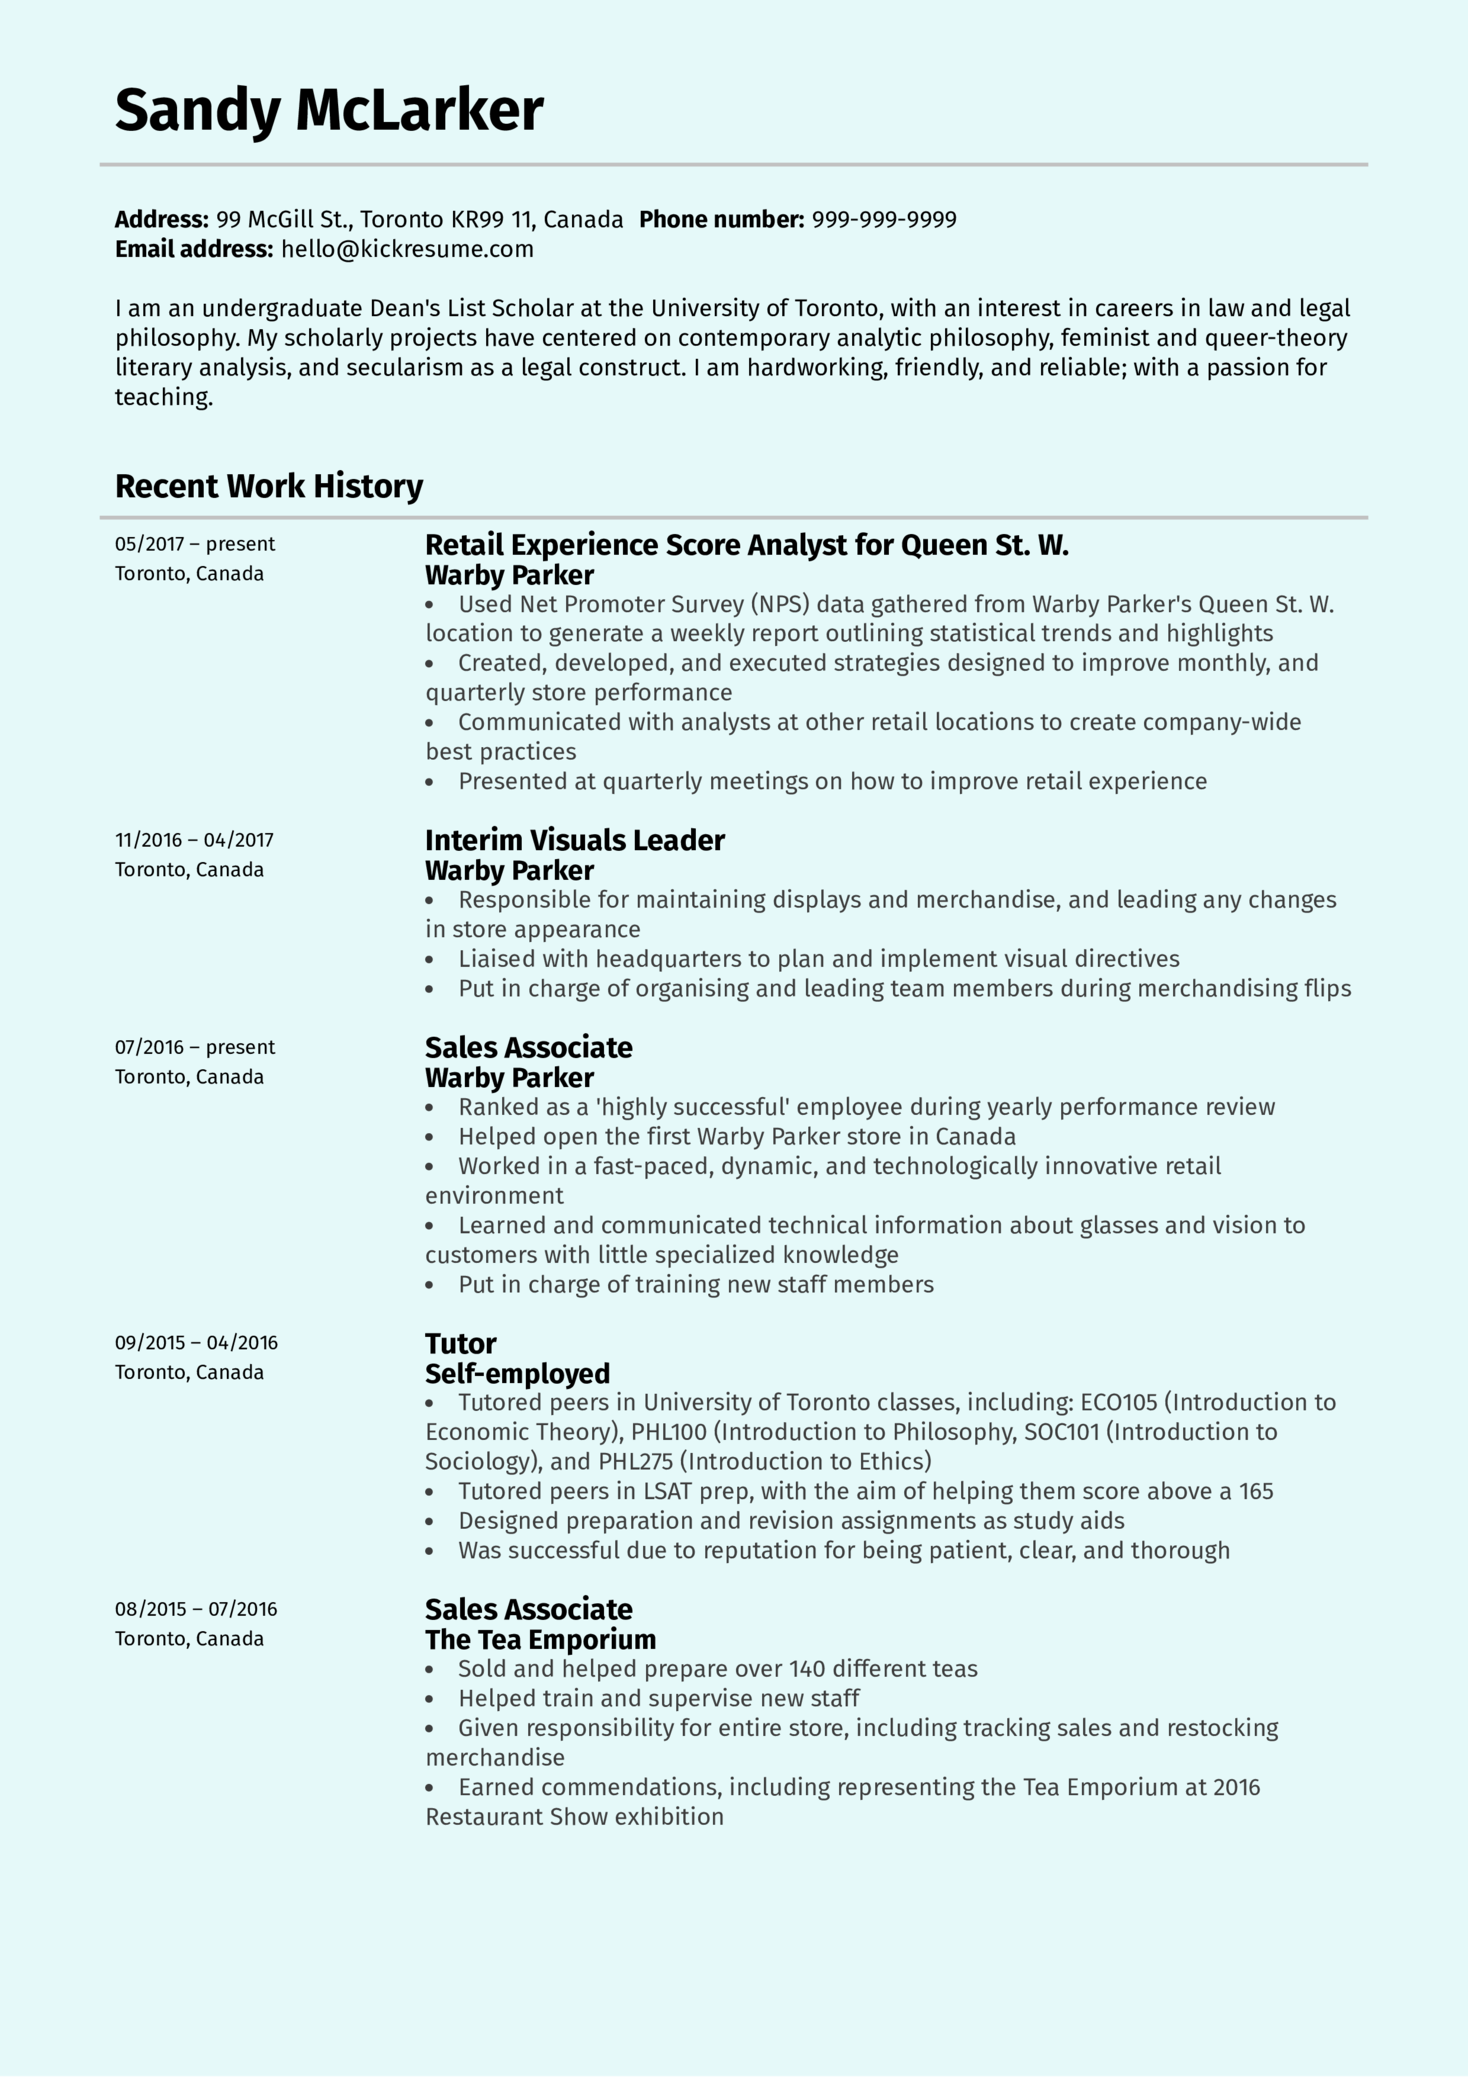 resume examples by real people  retail experience analyst at warby parker